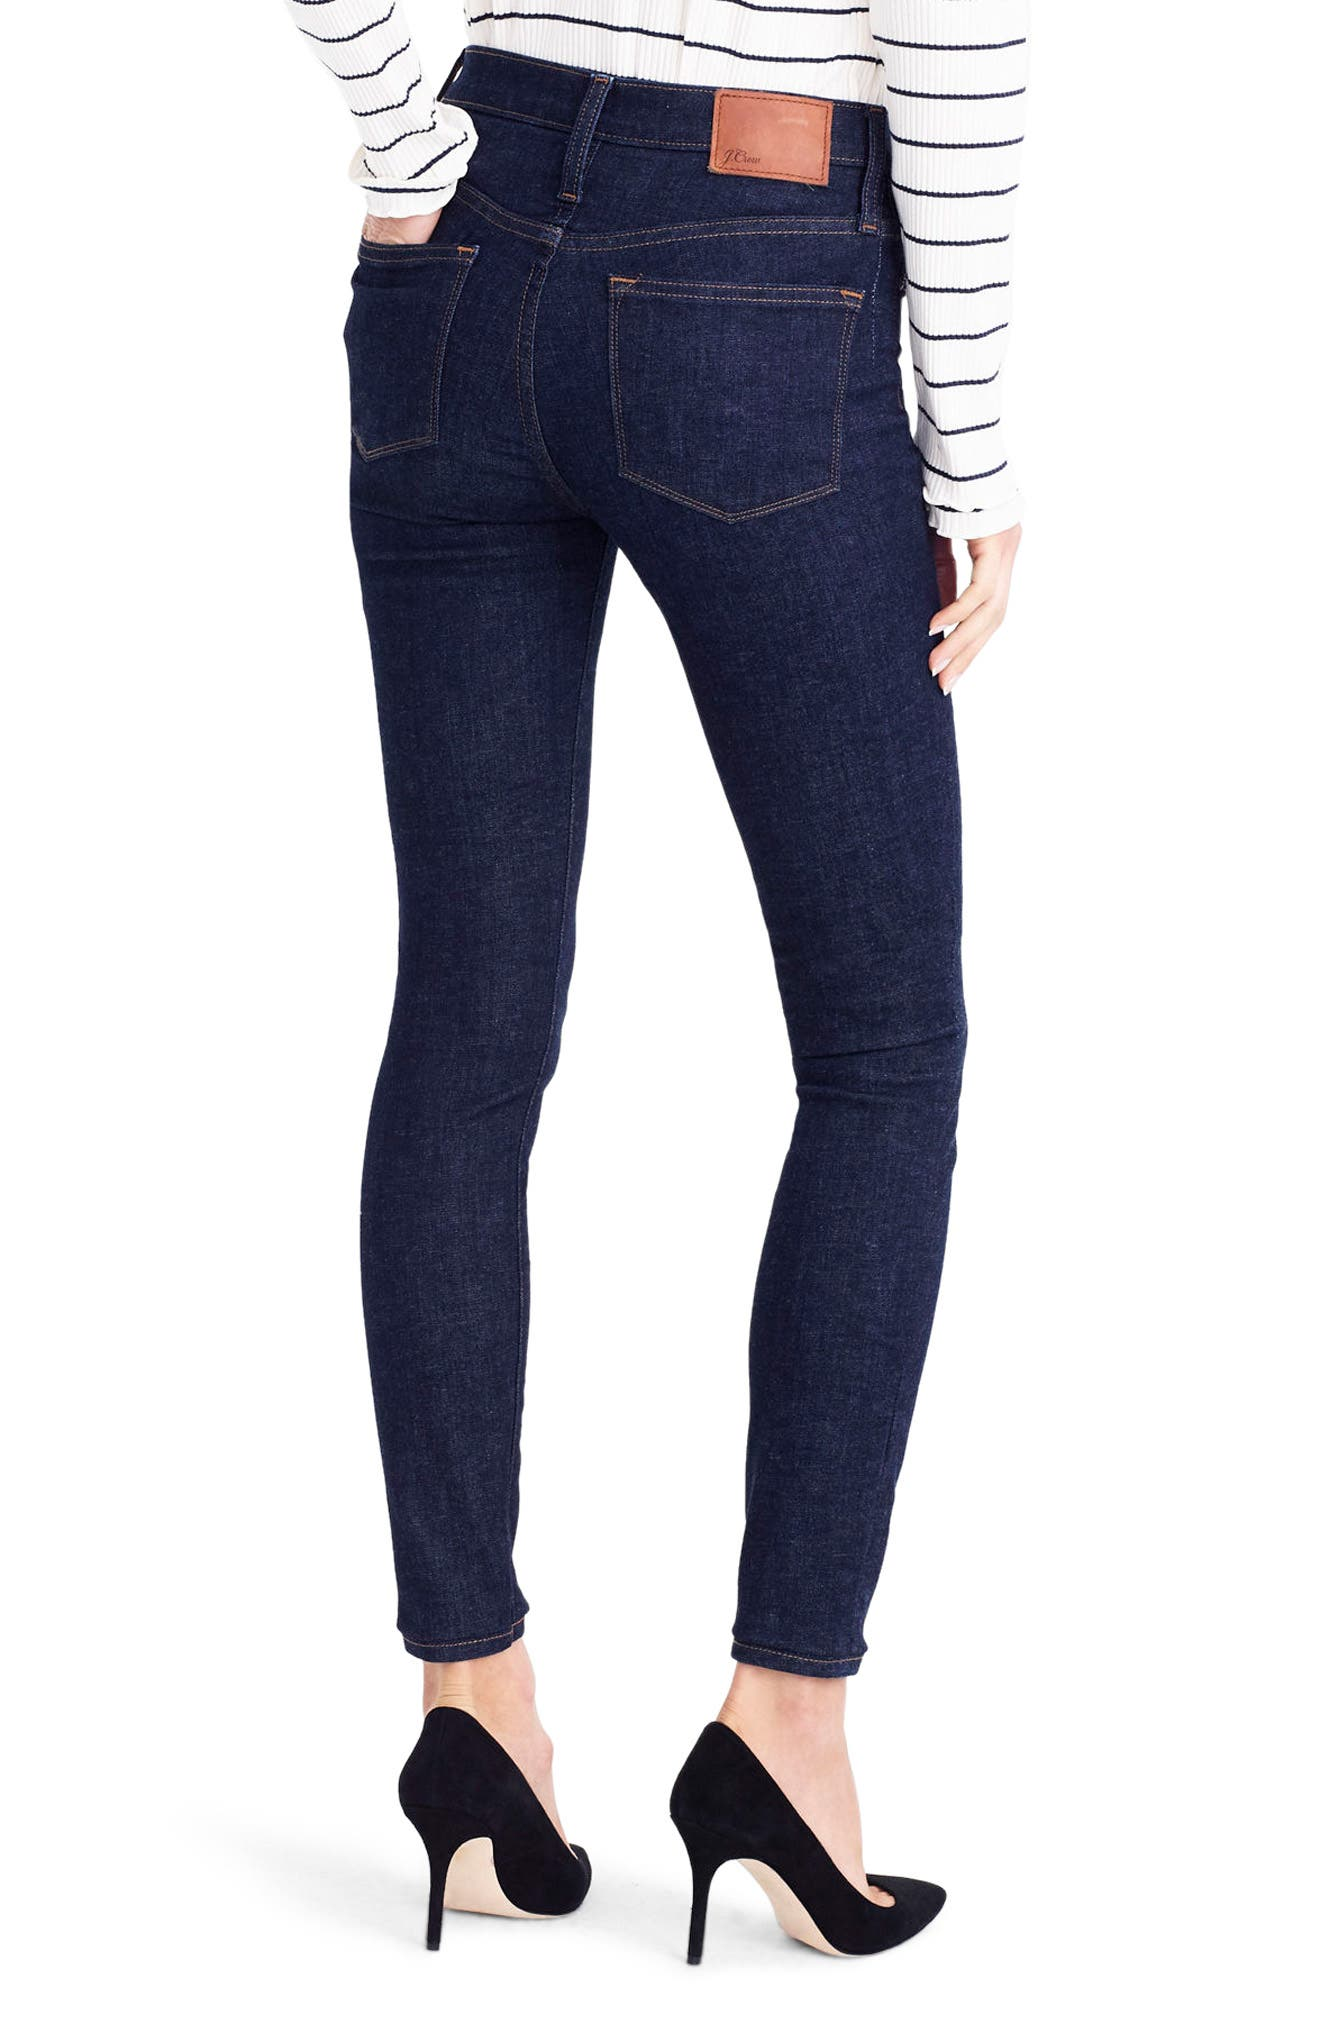 Toothpick High Rise Jeans,                             Alternate thumbnail 2, color,                             409